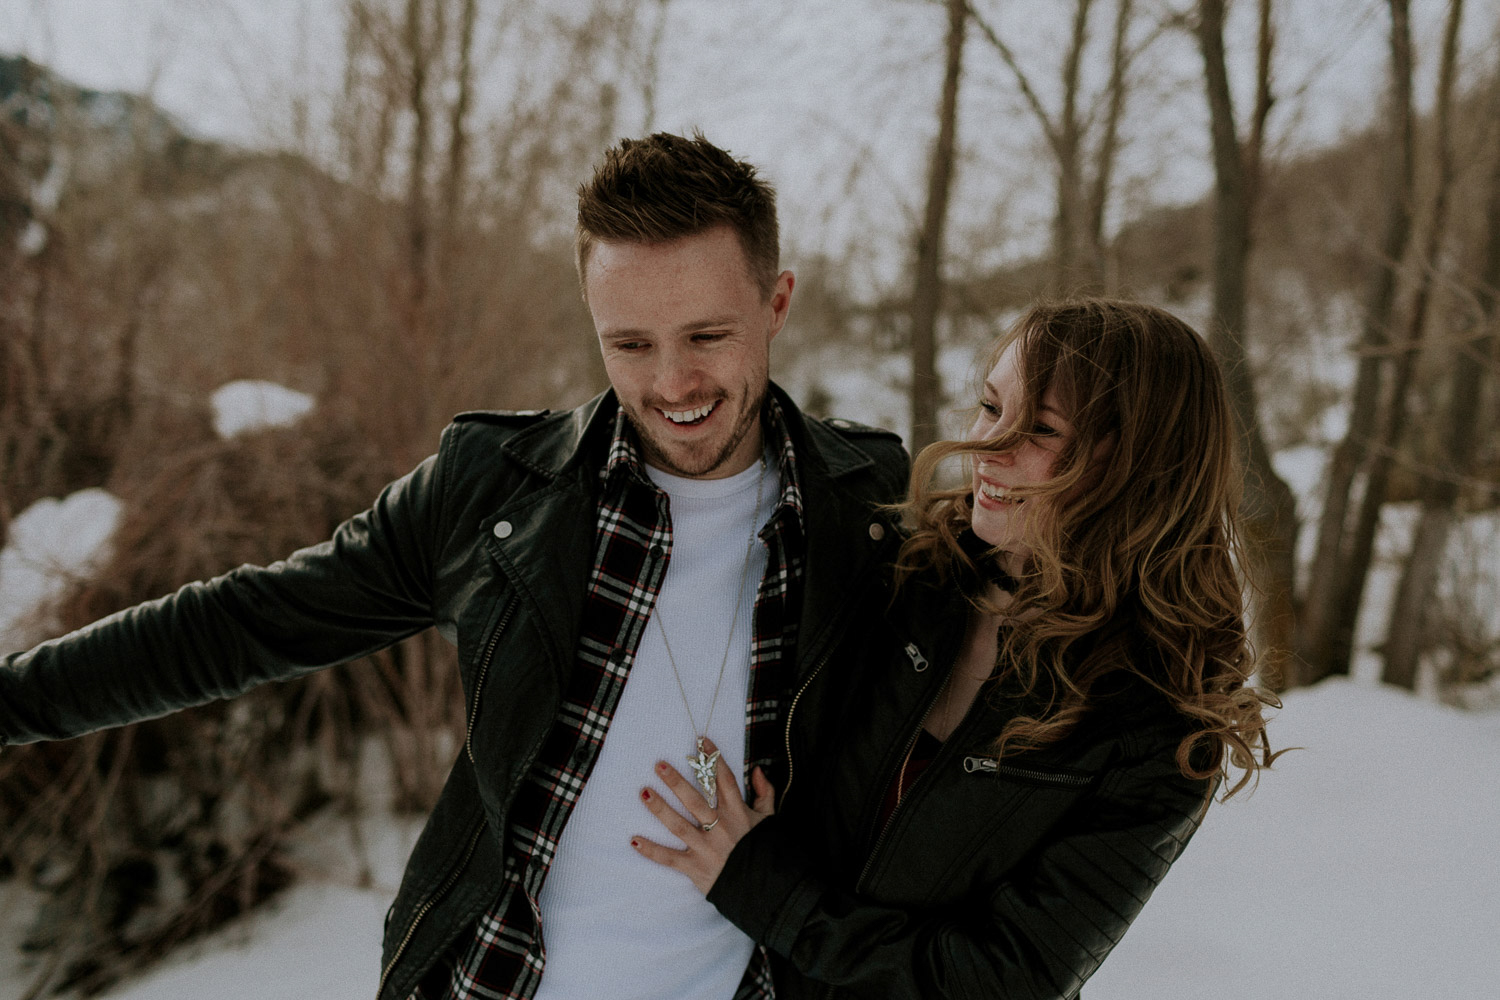 Image of couple laugh together